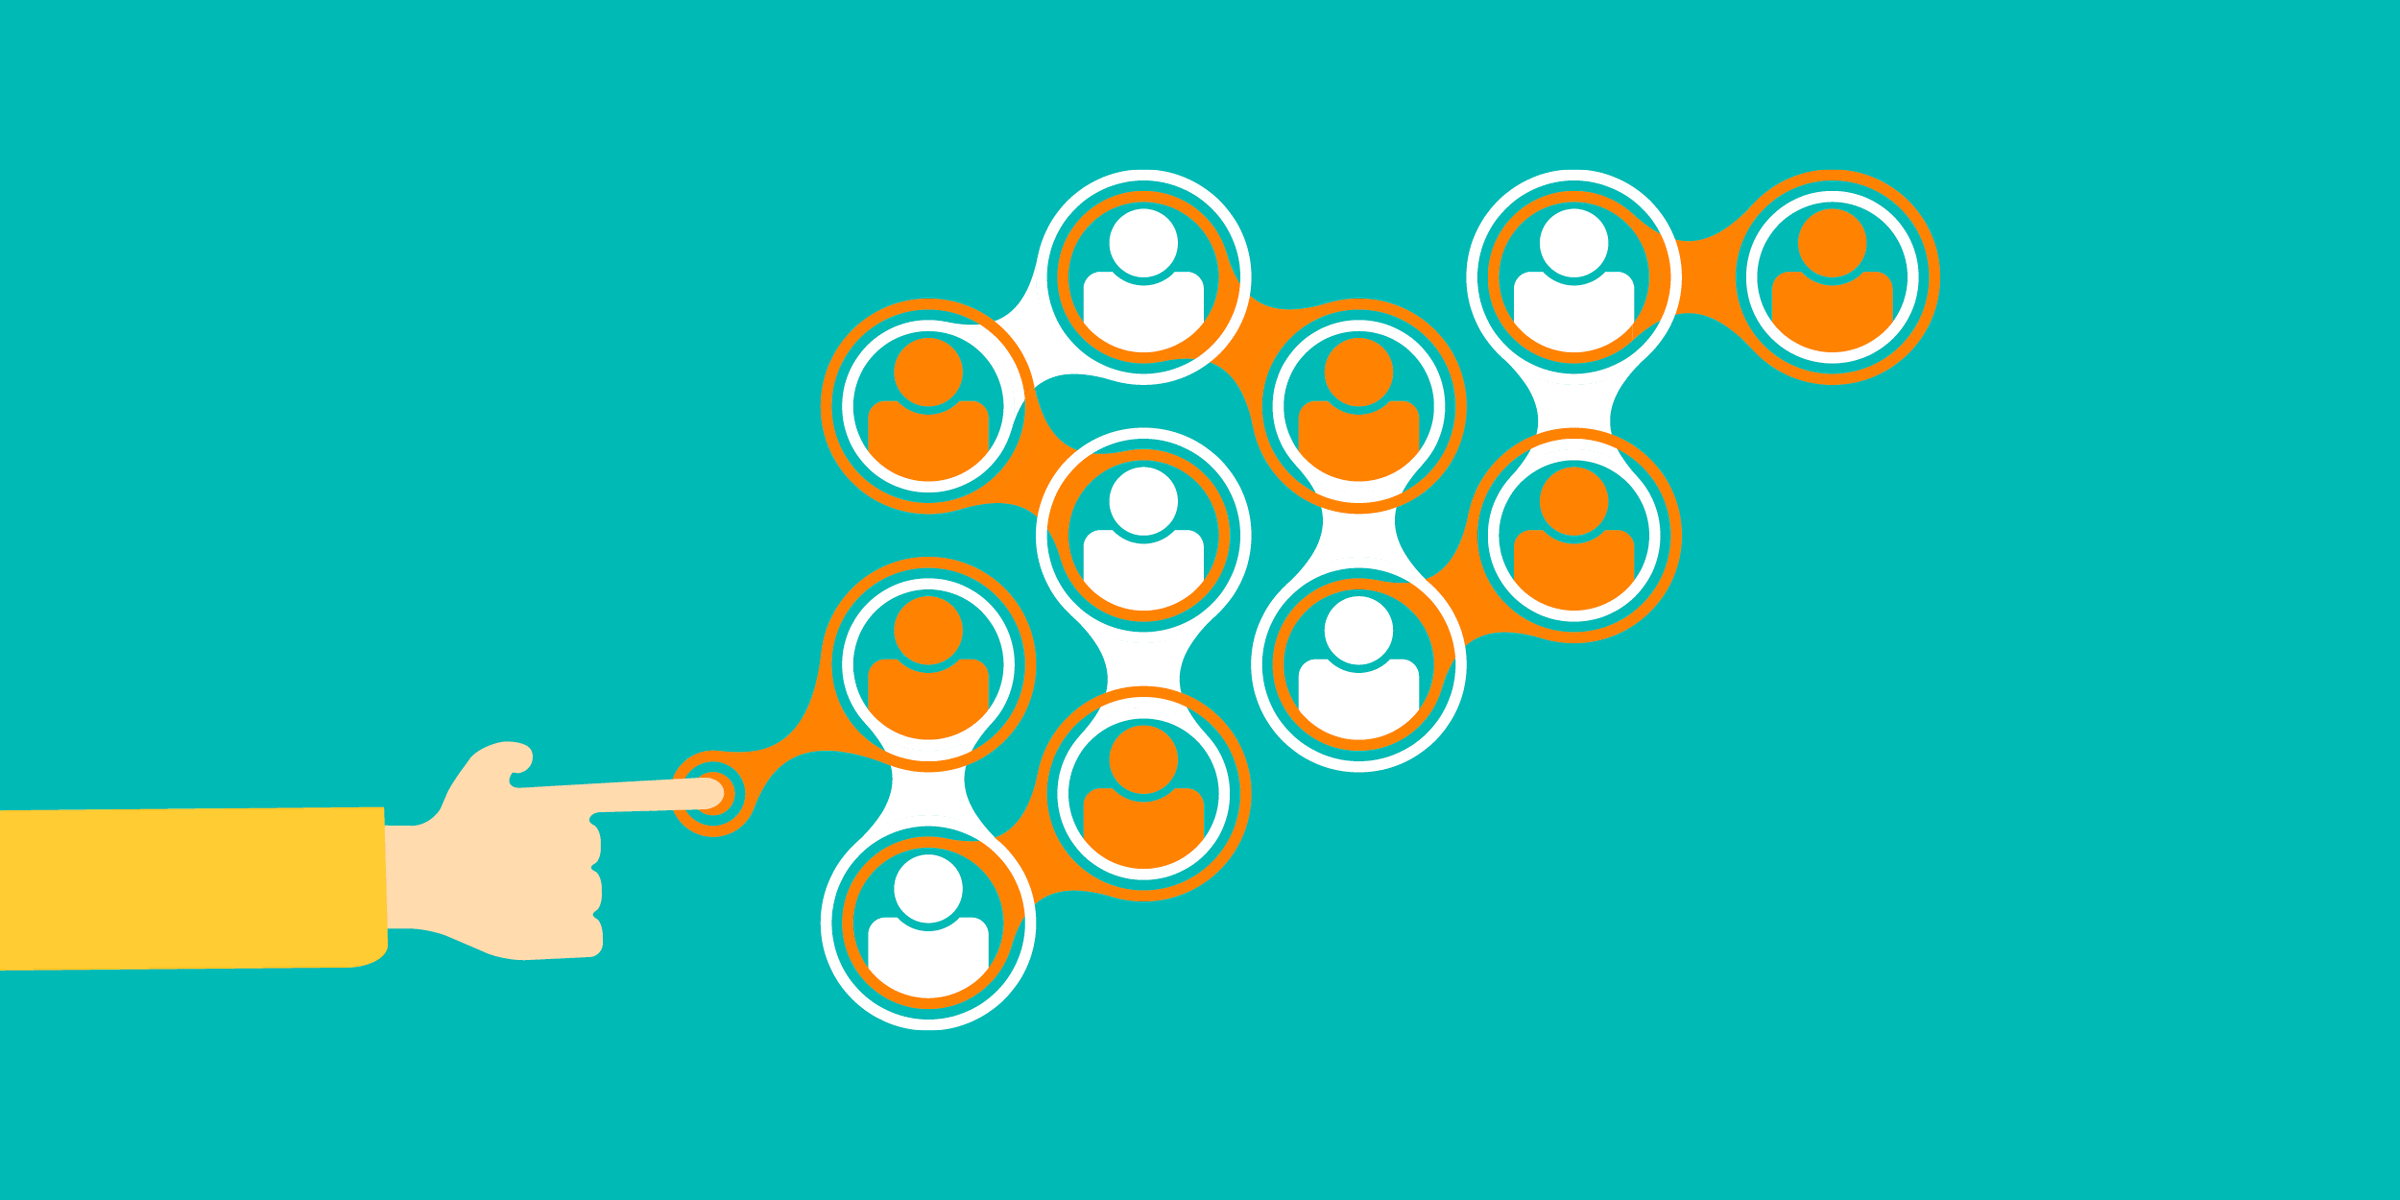 illustration of a person touching a network of people, representing nonprofit fundraising tools